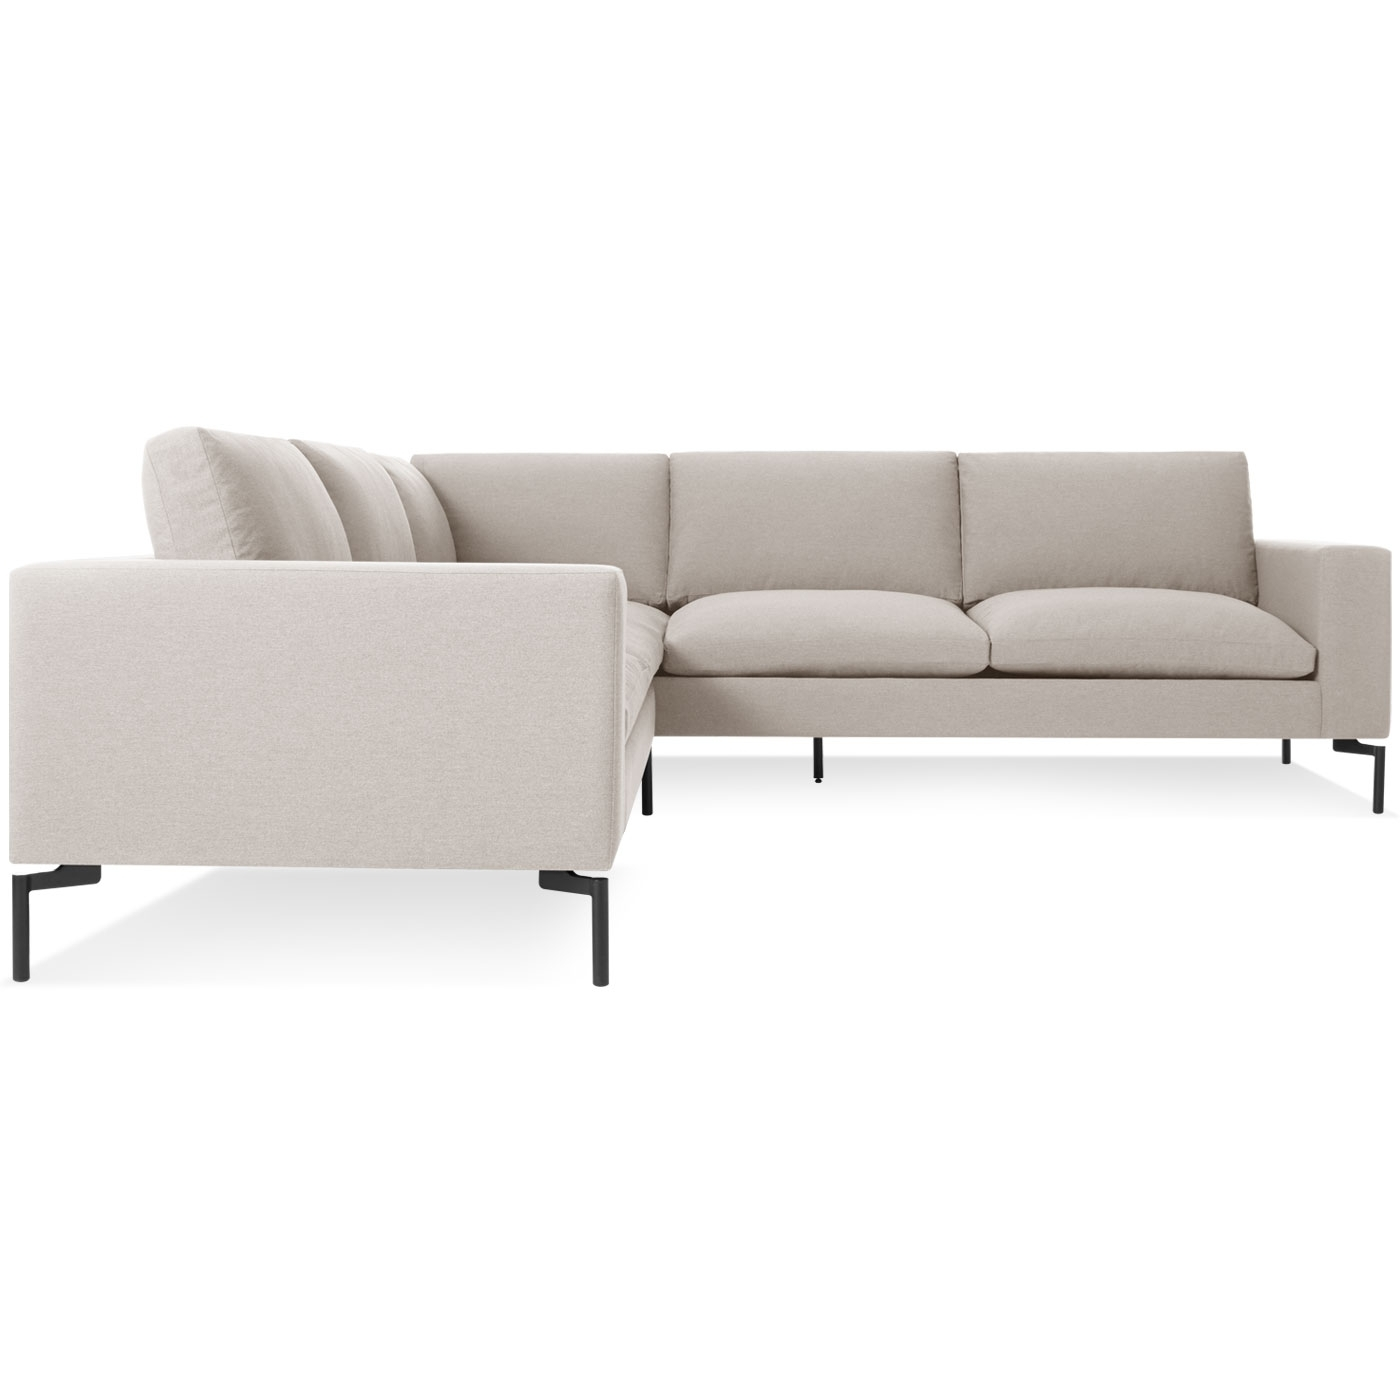 Blu Dot Throughout Modern Sectional Sofas For Small Spaces (View 9 of 20)